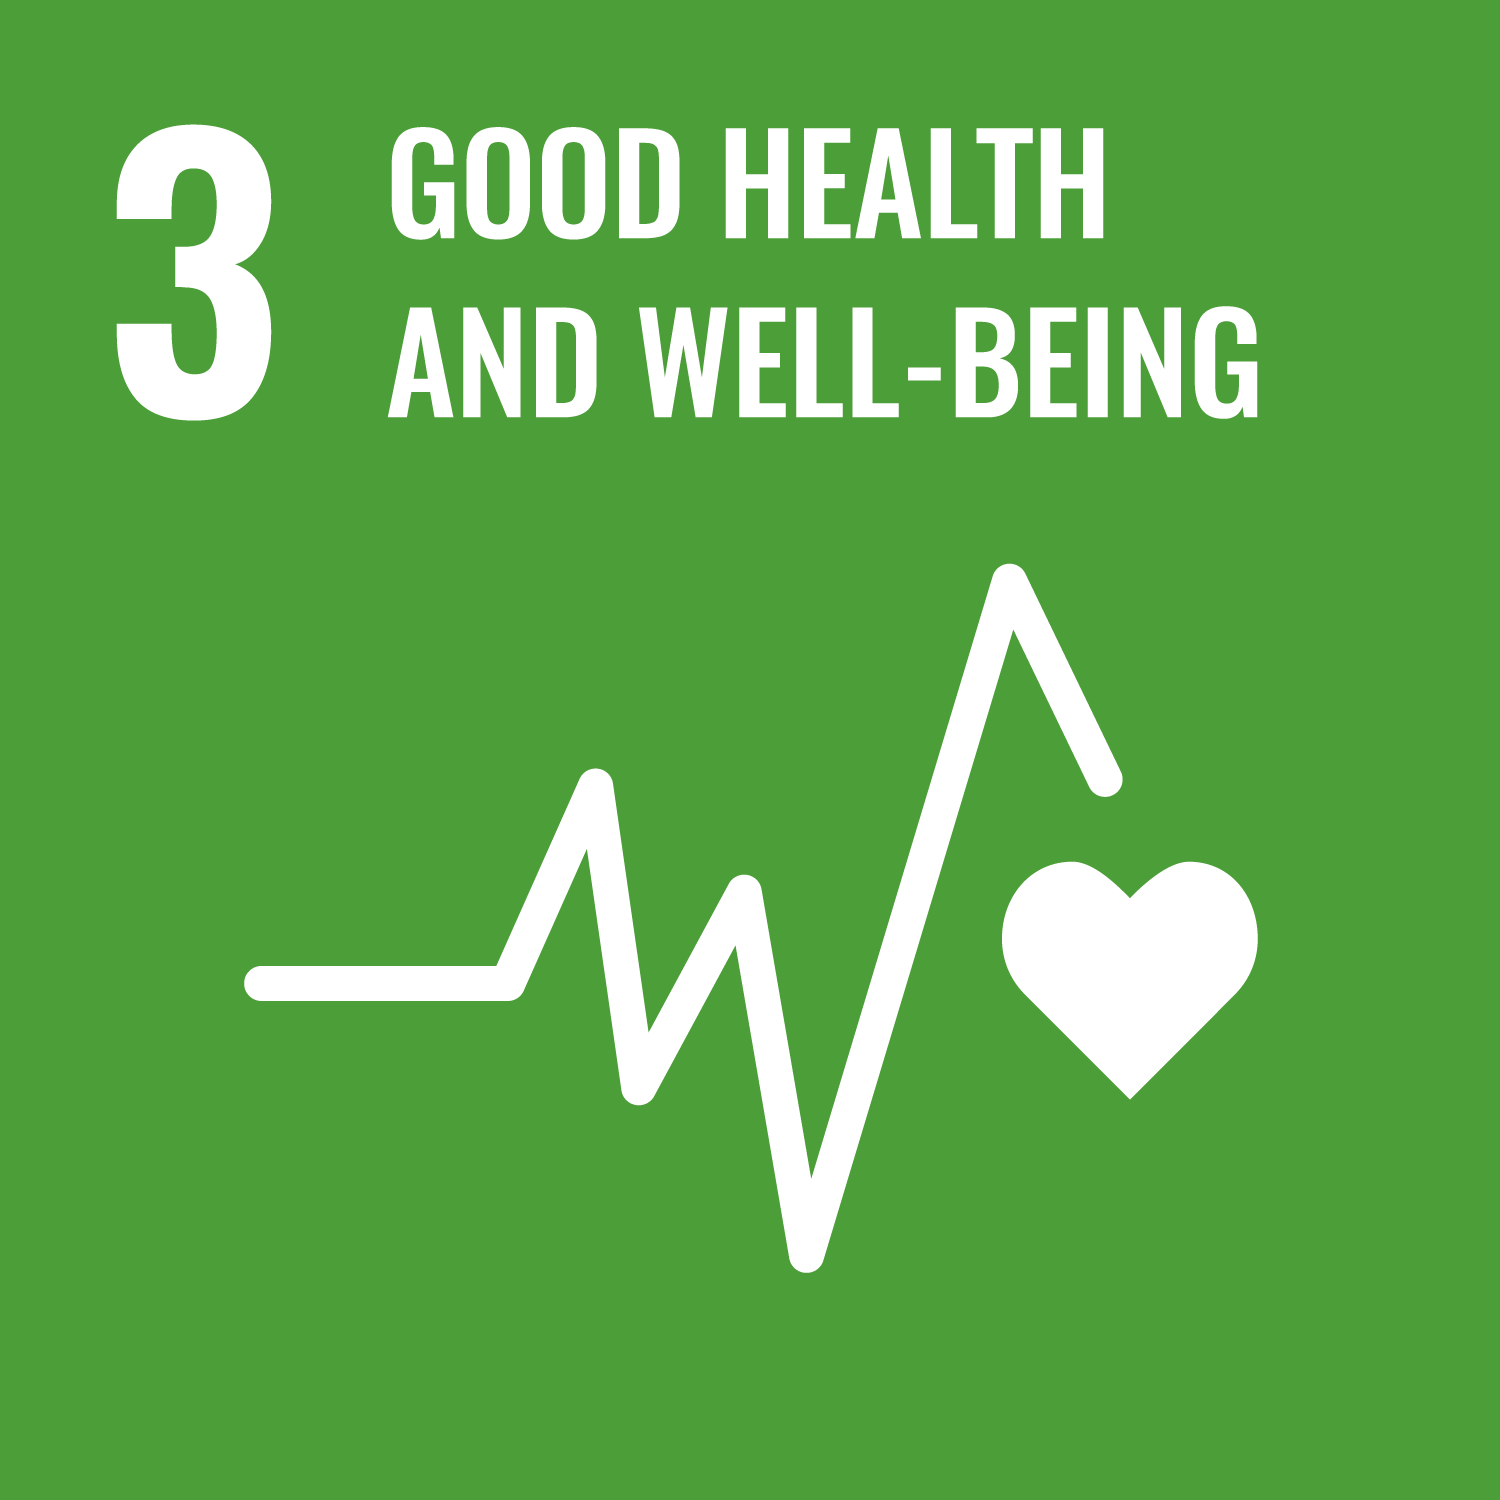 Goal 2 - Good Health and Well-being